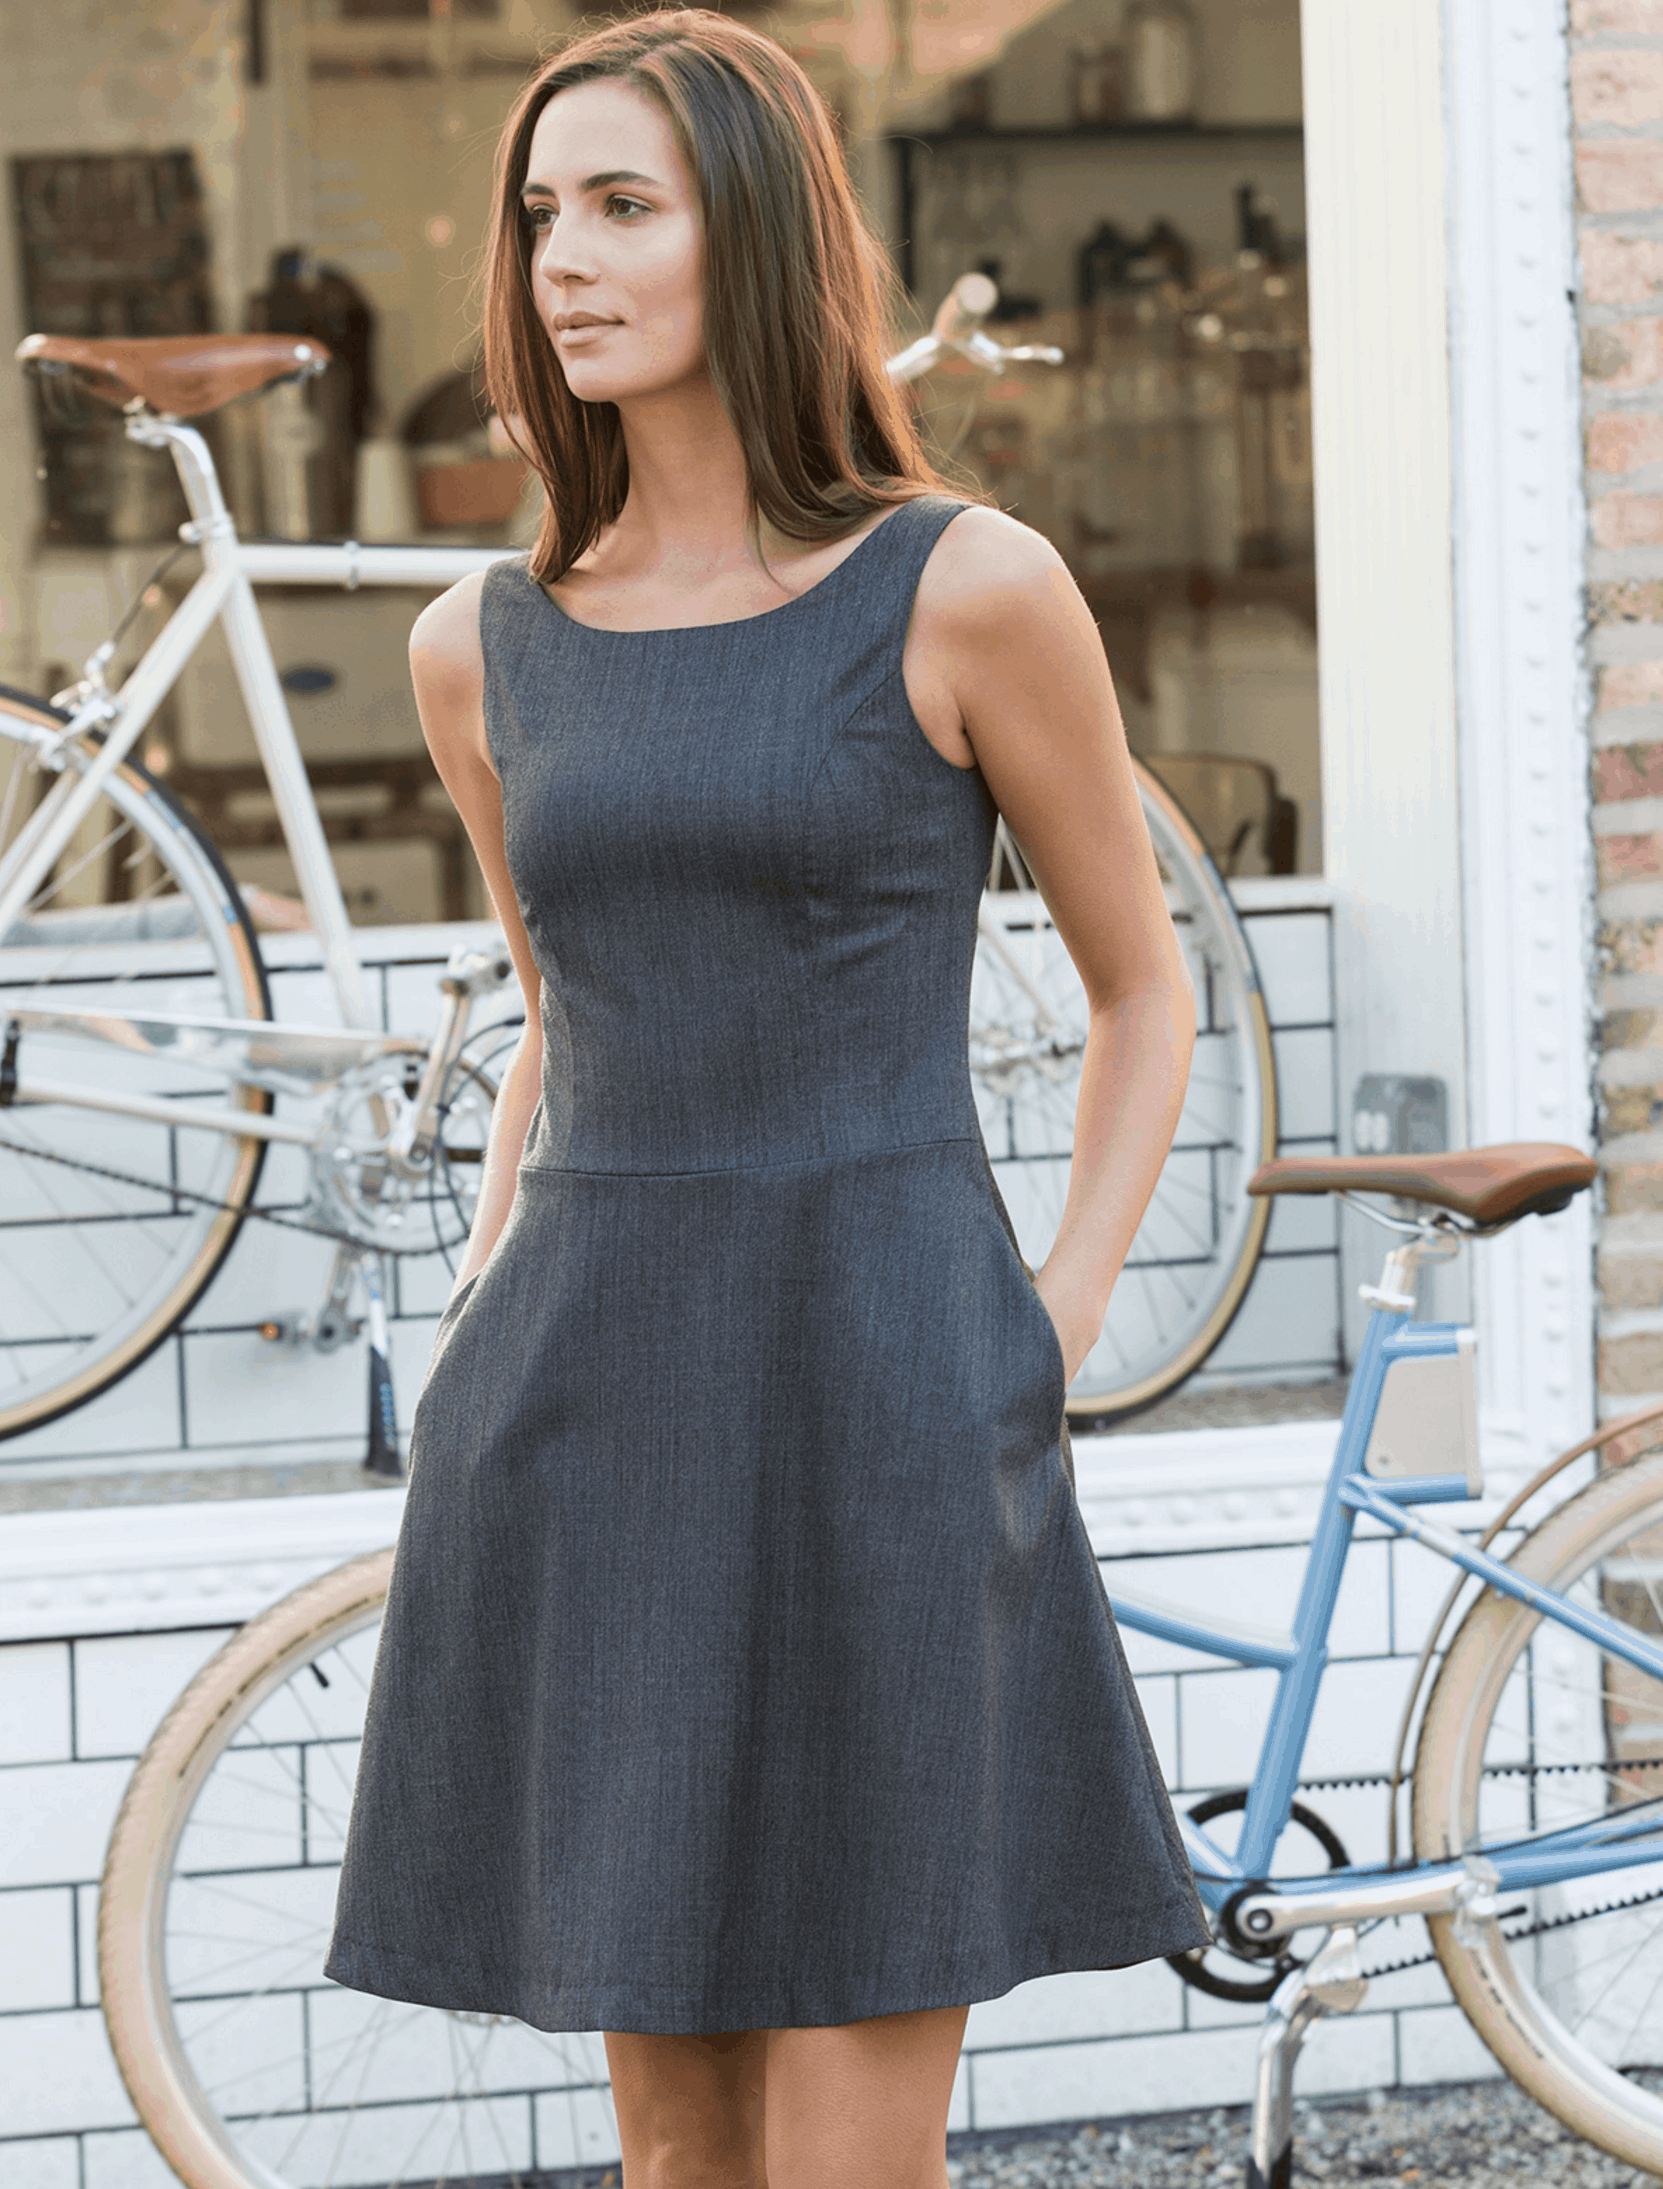 Everyday Bike Dress